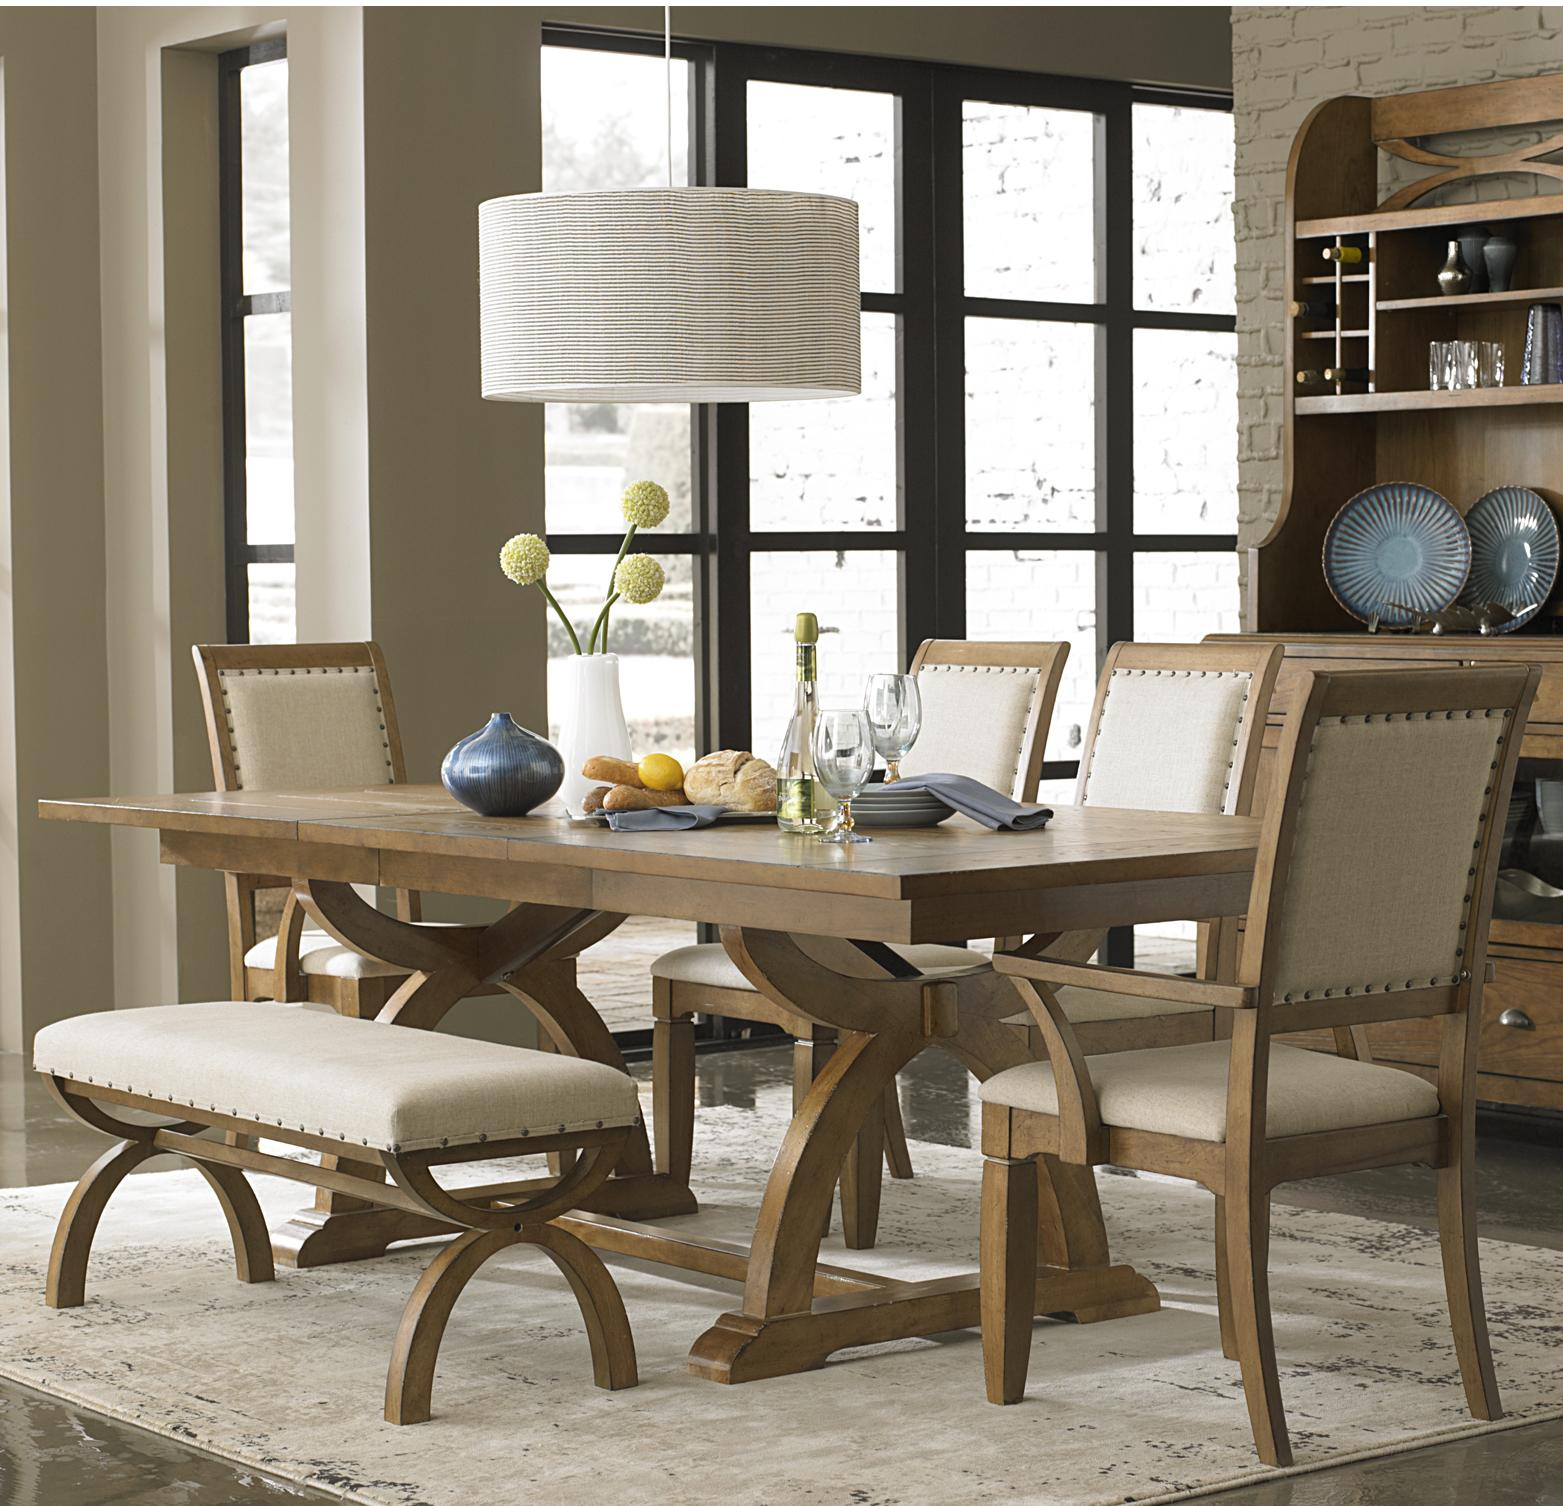 6 Piece Trestle Table Set With 4 Upholstered Chairs Dining Bench